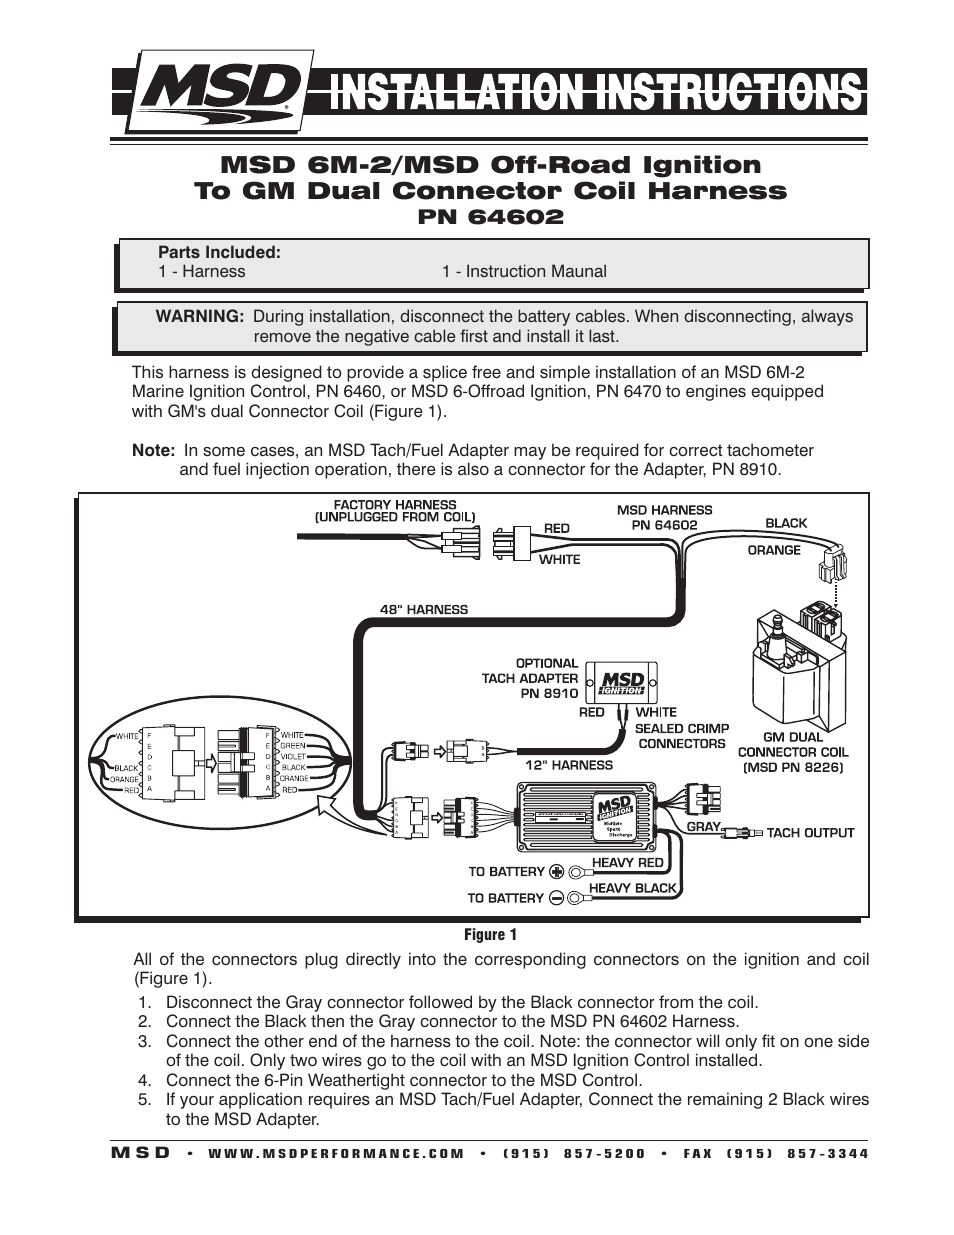 hight resolution of msd 64602 6m 2 to gm dual connector harness installation user manual 2 pages